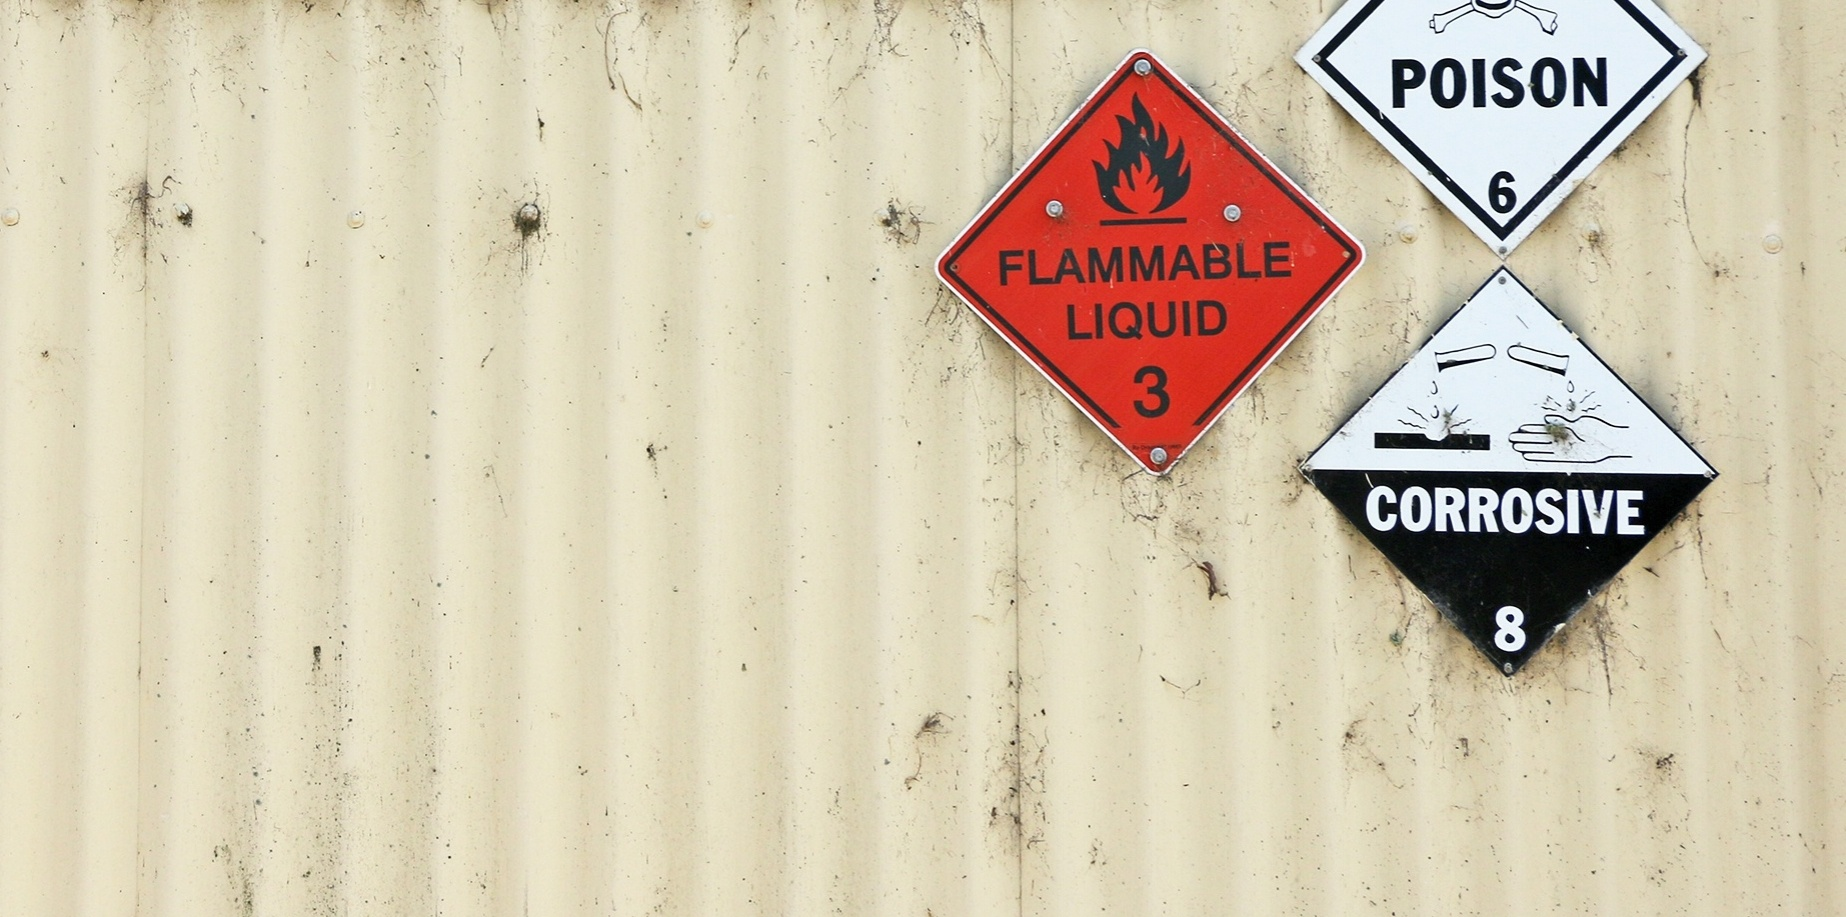 How to Store Flammable Liquids and Corrosive Substances in a Compliant manner